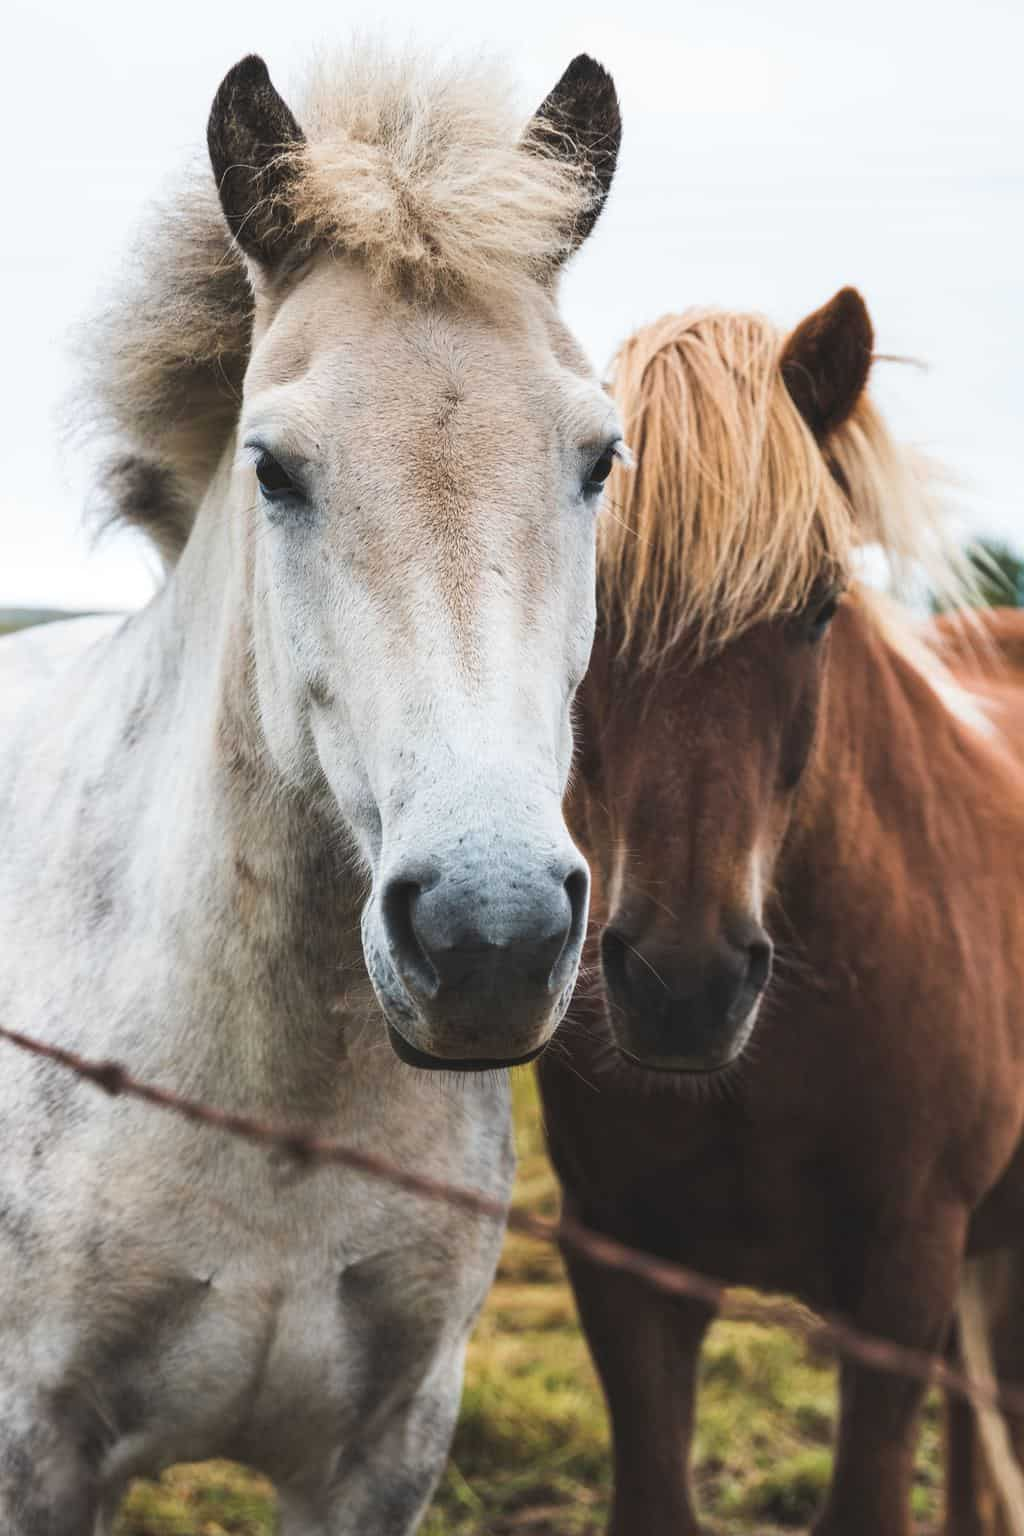 Healing horses with Reiki - Animal Wellness Guide